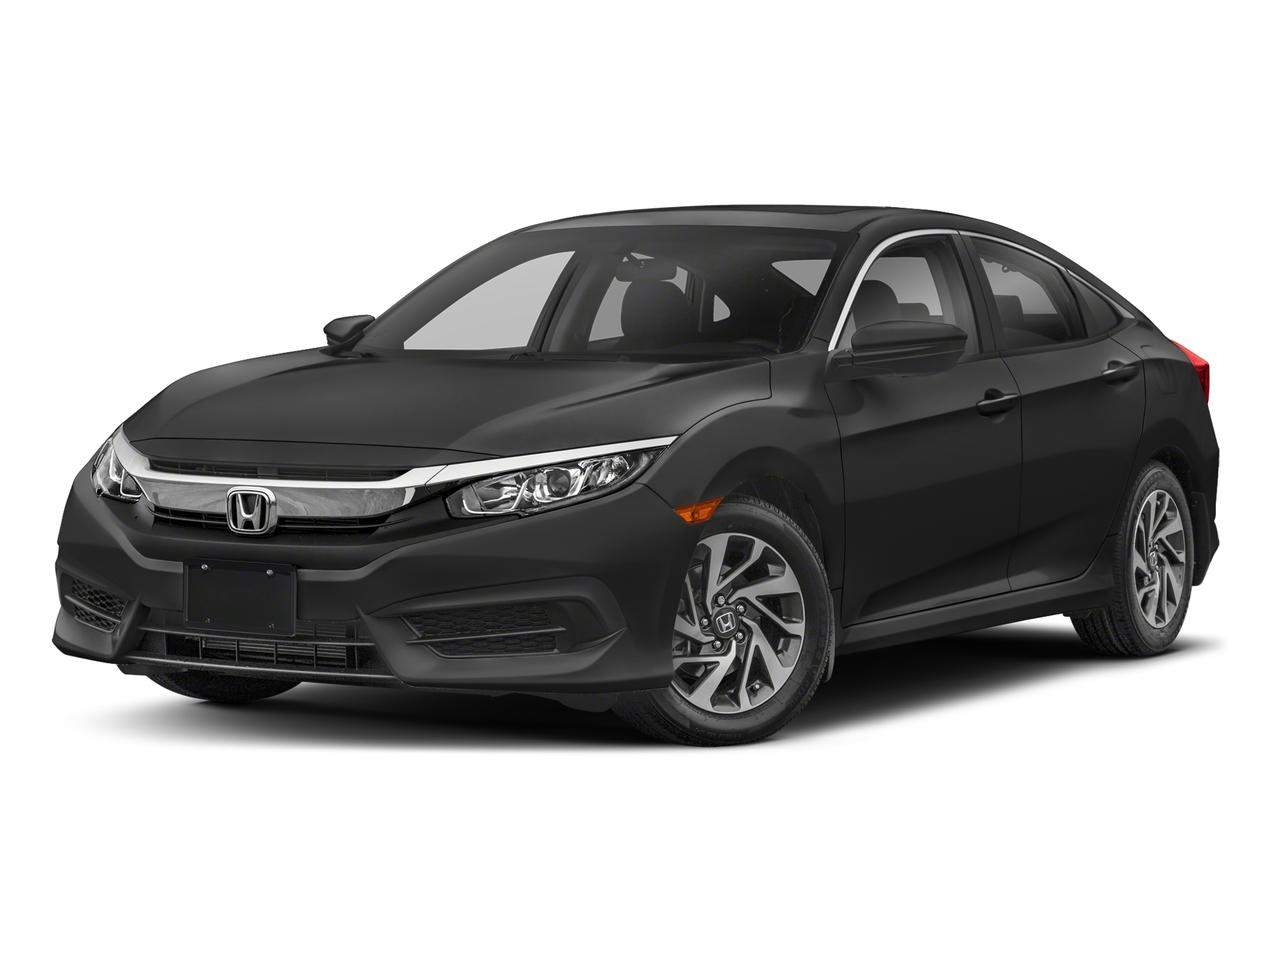 2018 Honda Civic Sedan Vehicle Photo in San Antonio, TX 78238